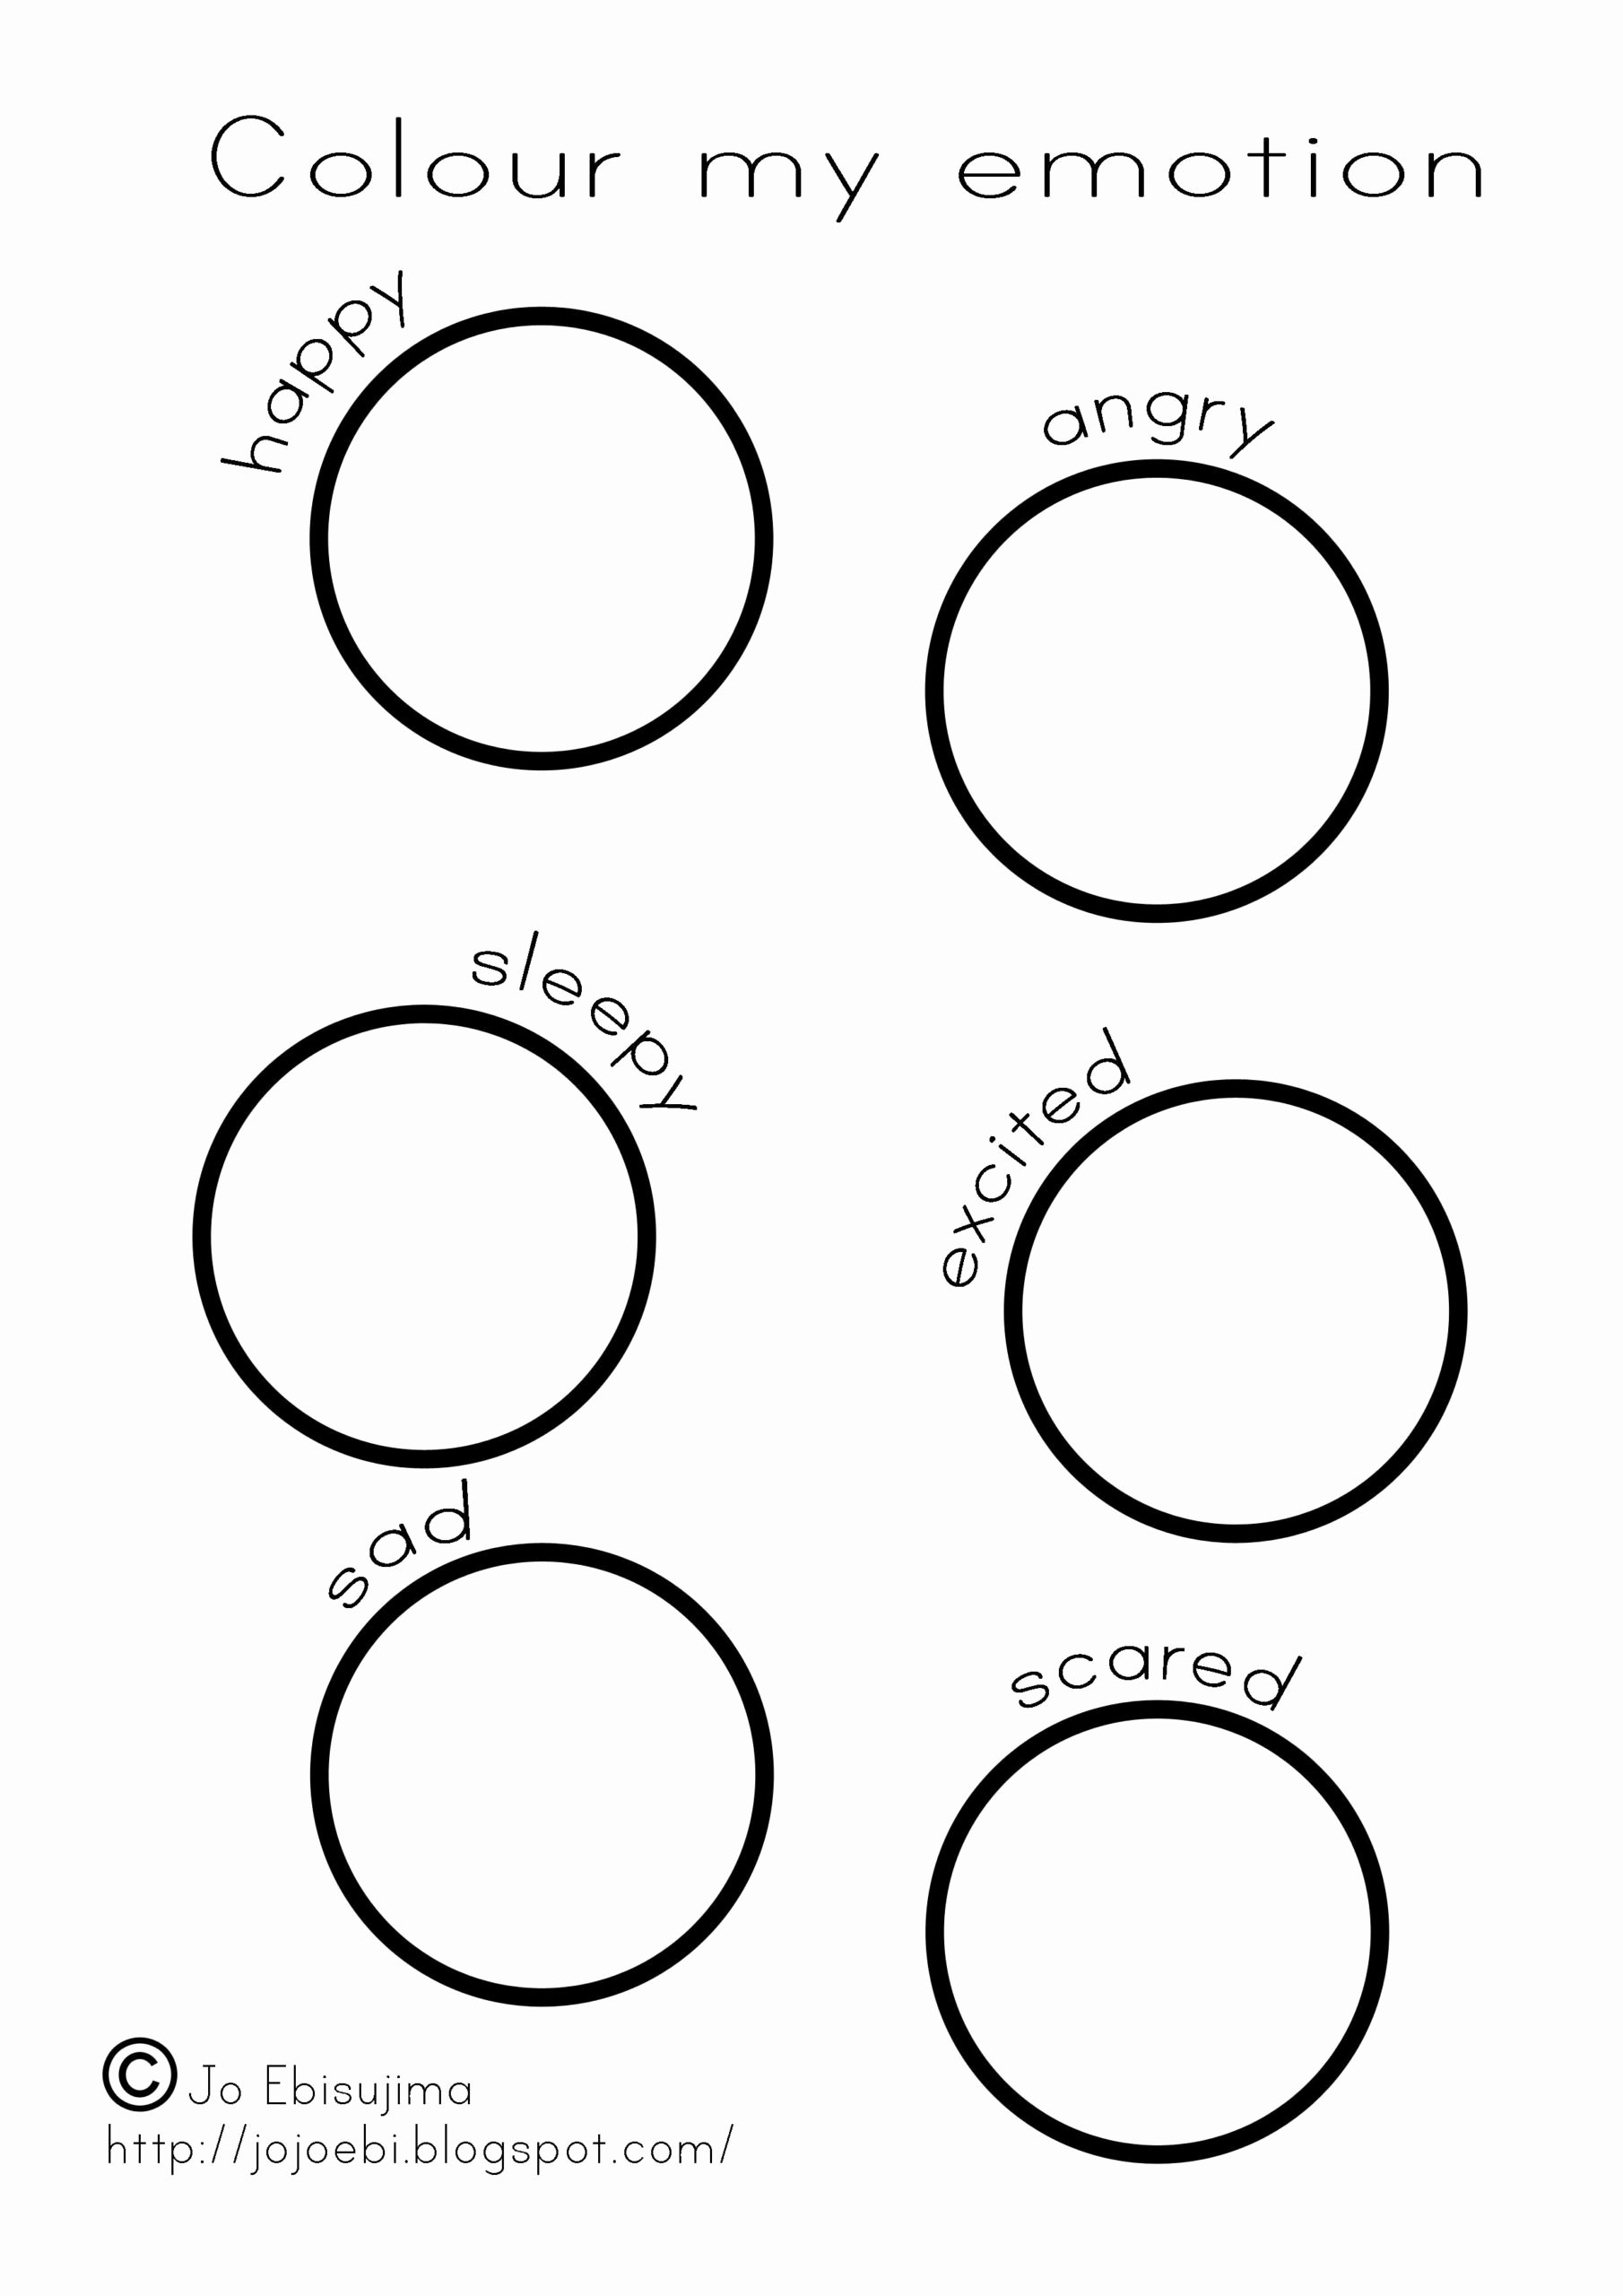 Anxiety Worksheets for Preschoolers Free Planes Symmetry In Shapes Worksheet Drawing with Children